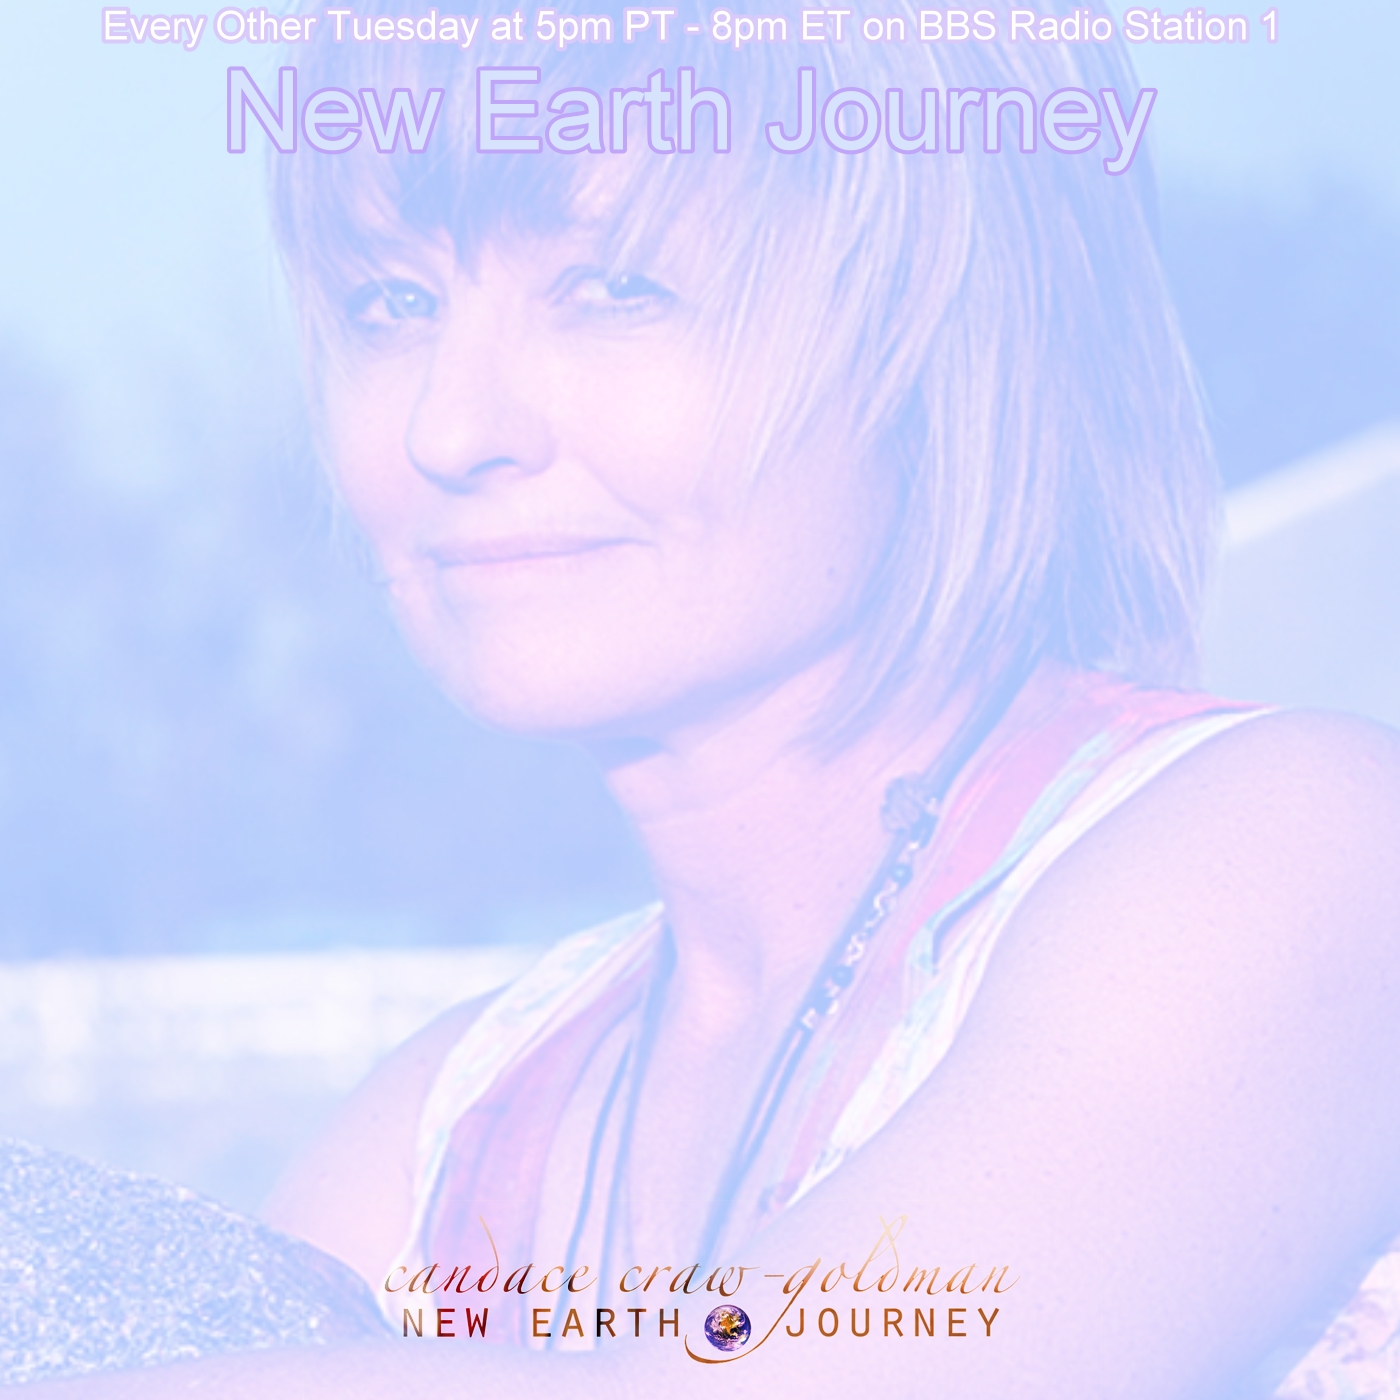 New Earth Journey with Candace Craw-Goldman